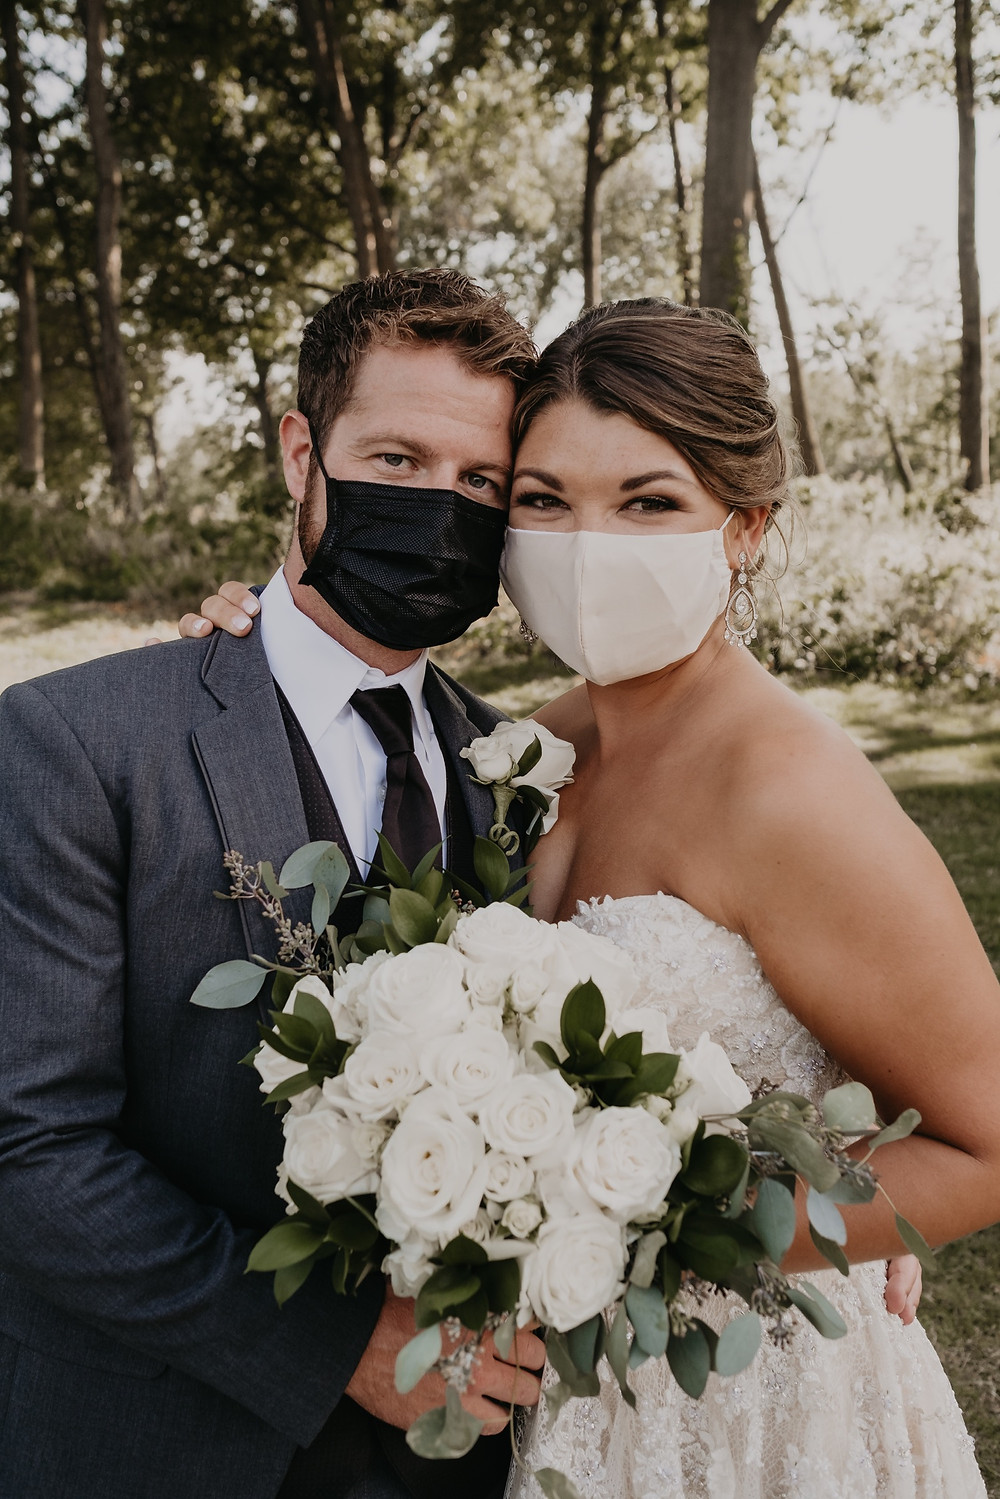 Pandemic bride and groom in Metro Detroit. Photographed by Nicole Leanne Photography.